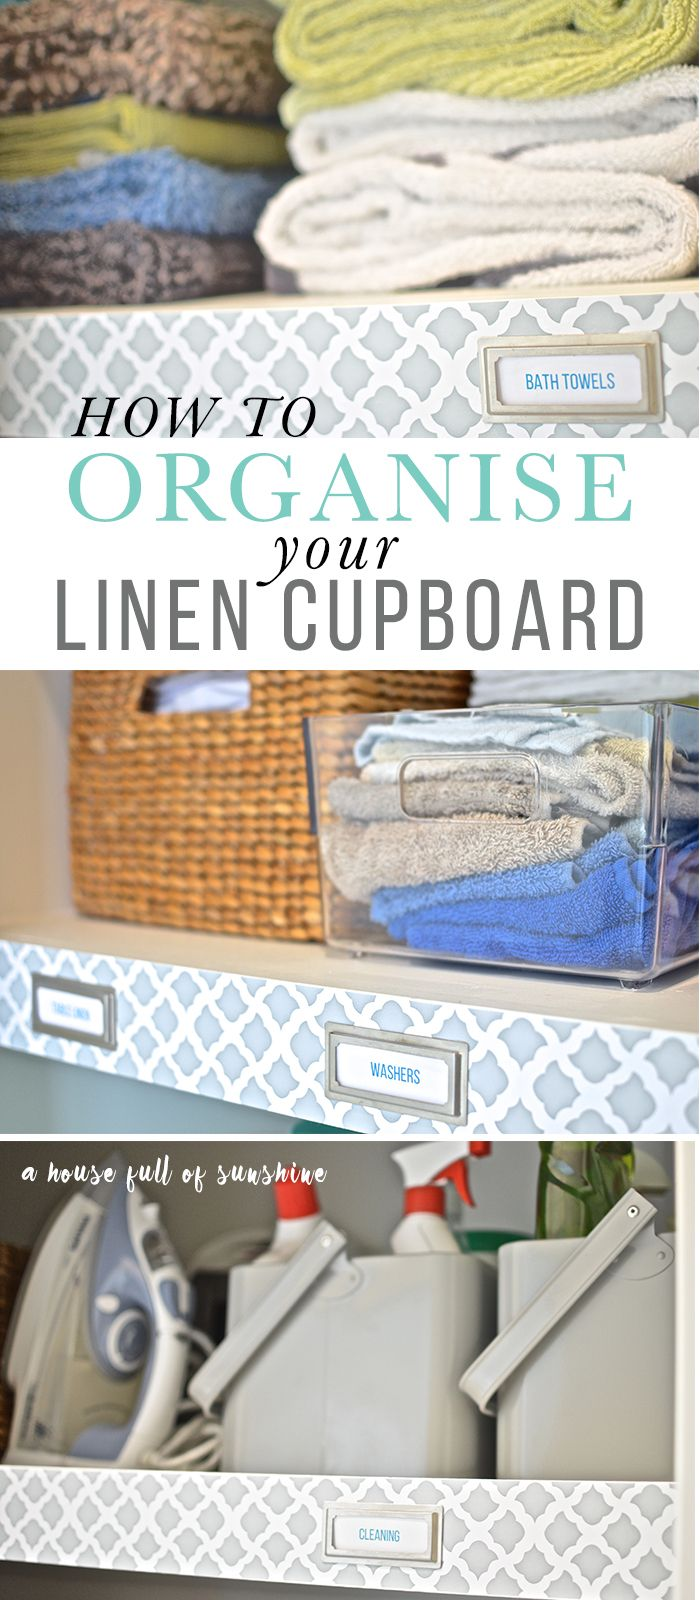 Seven practical tips and hacks for organising your linen cupboard, plus a checklist of items to throw away. This linen cupboard makeover is gorgeous! via @karenschrav